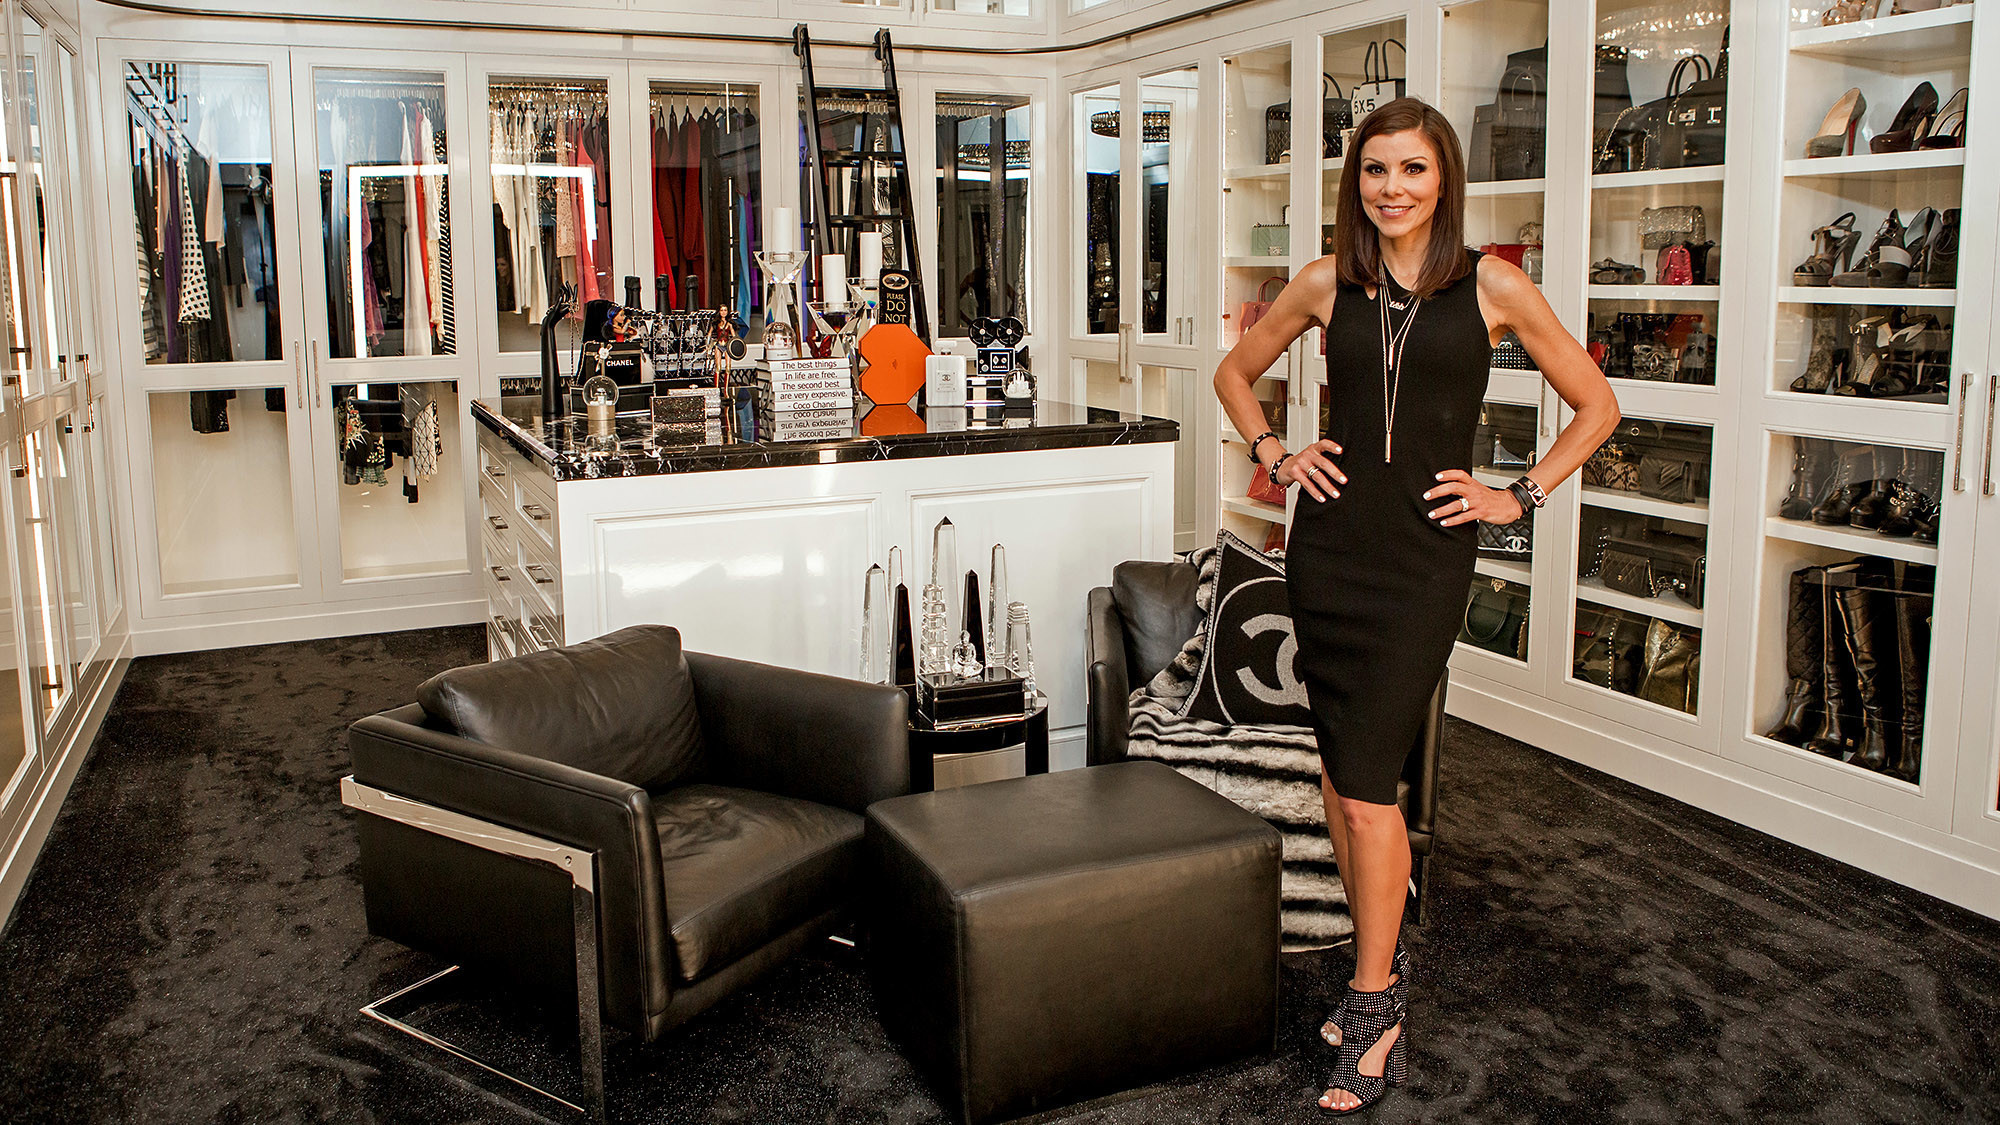 My Favorite Room Heather Dubrow 39 S Closet Is Always Ready